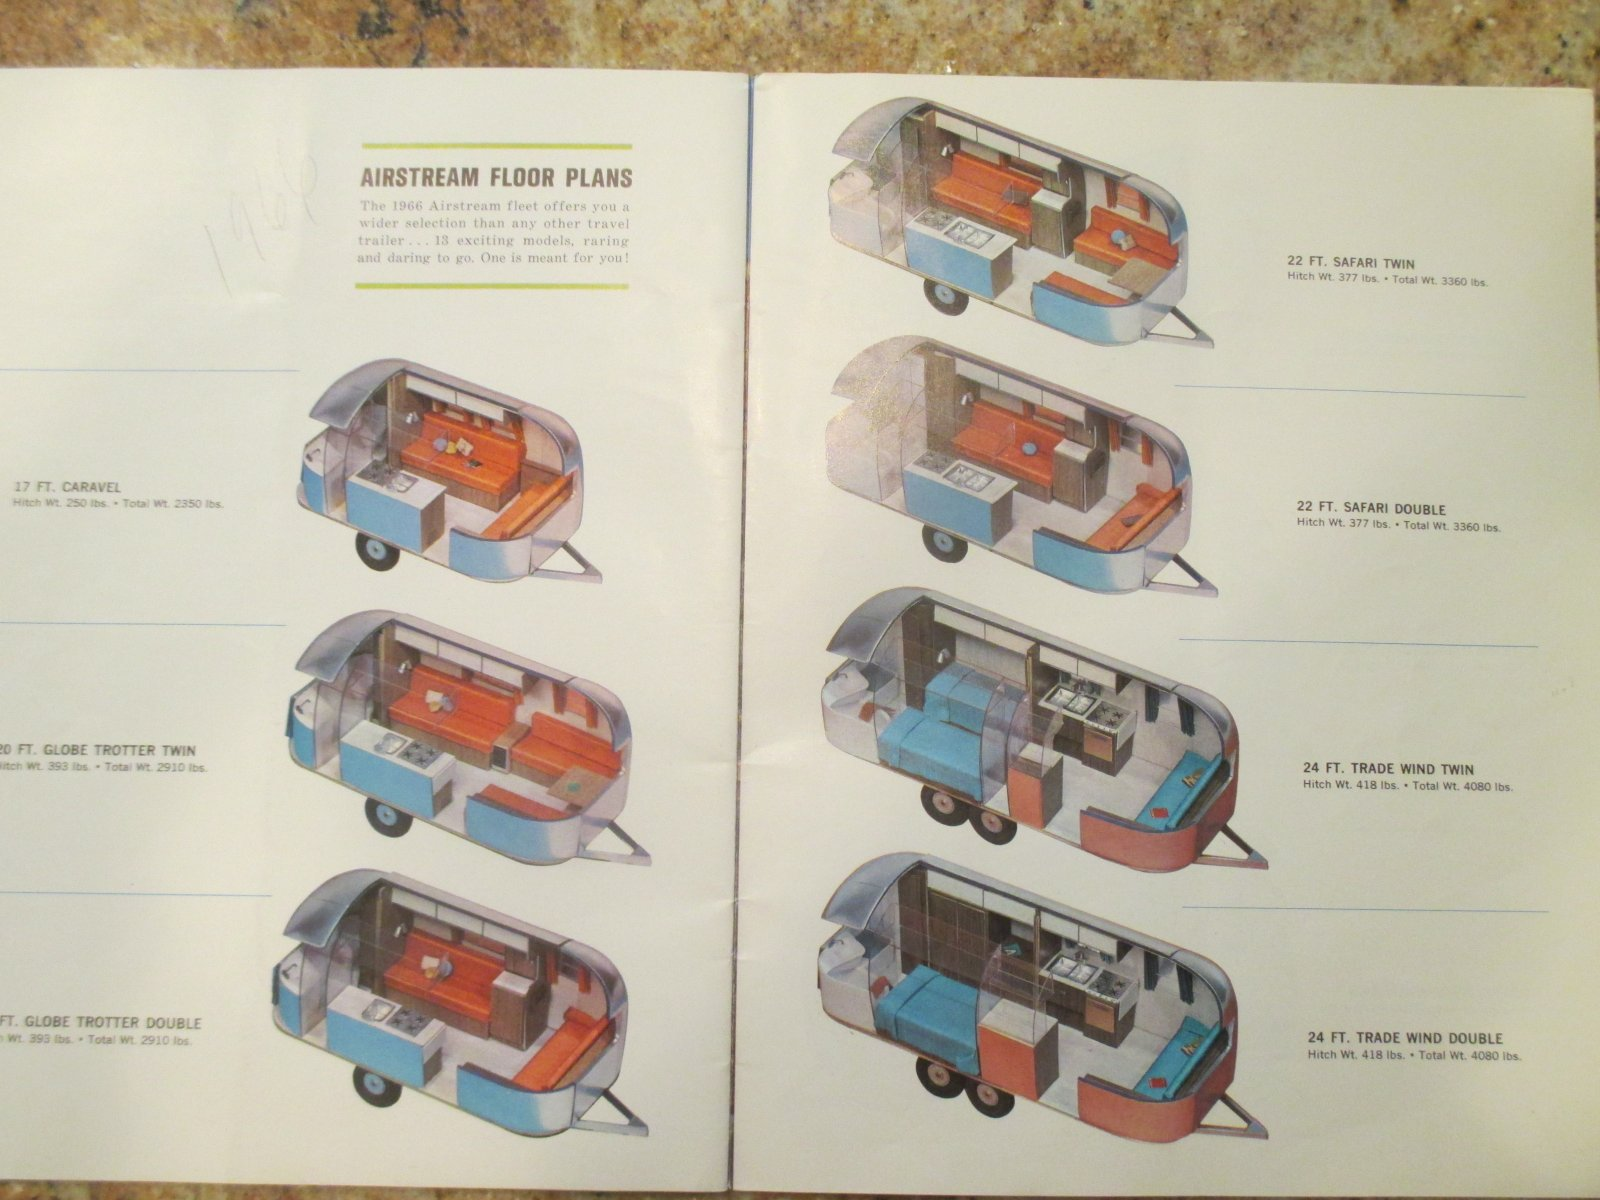 Interior Dimensions 1966 Safari Twin - Airstream Forums